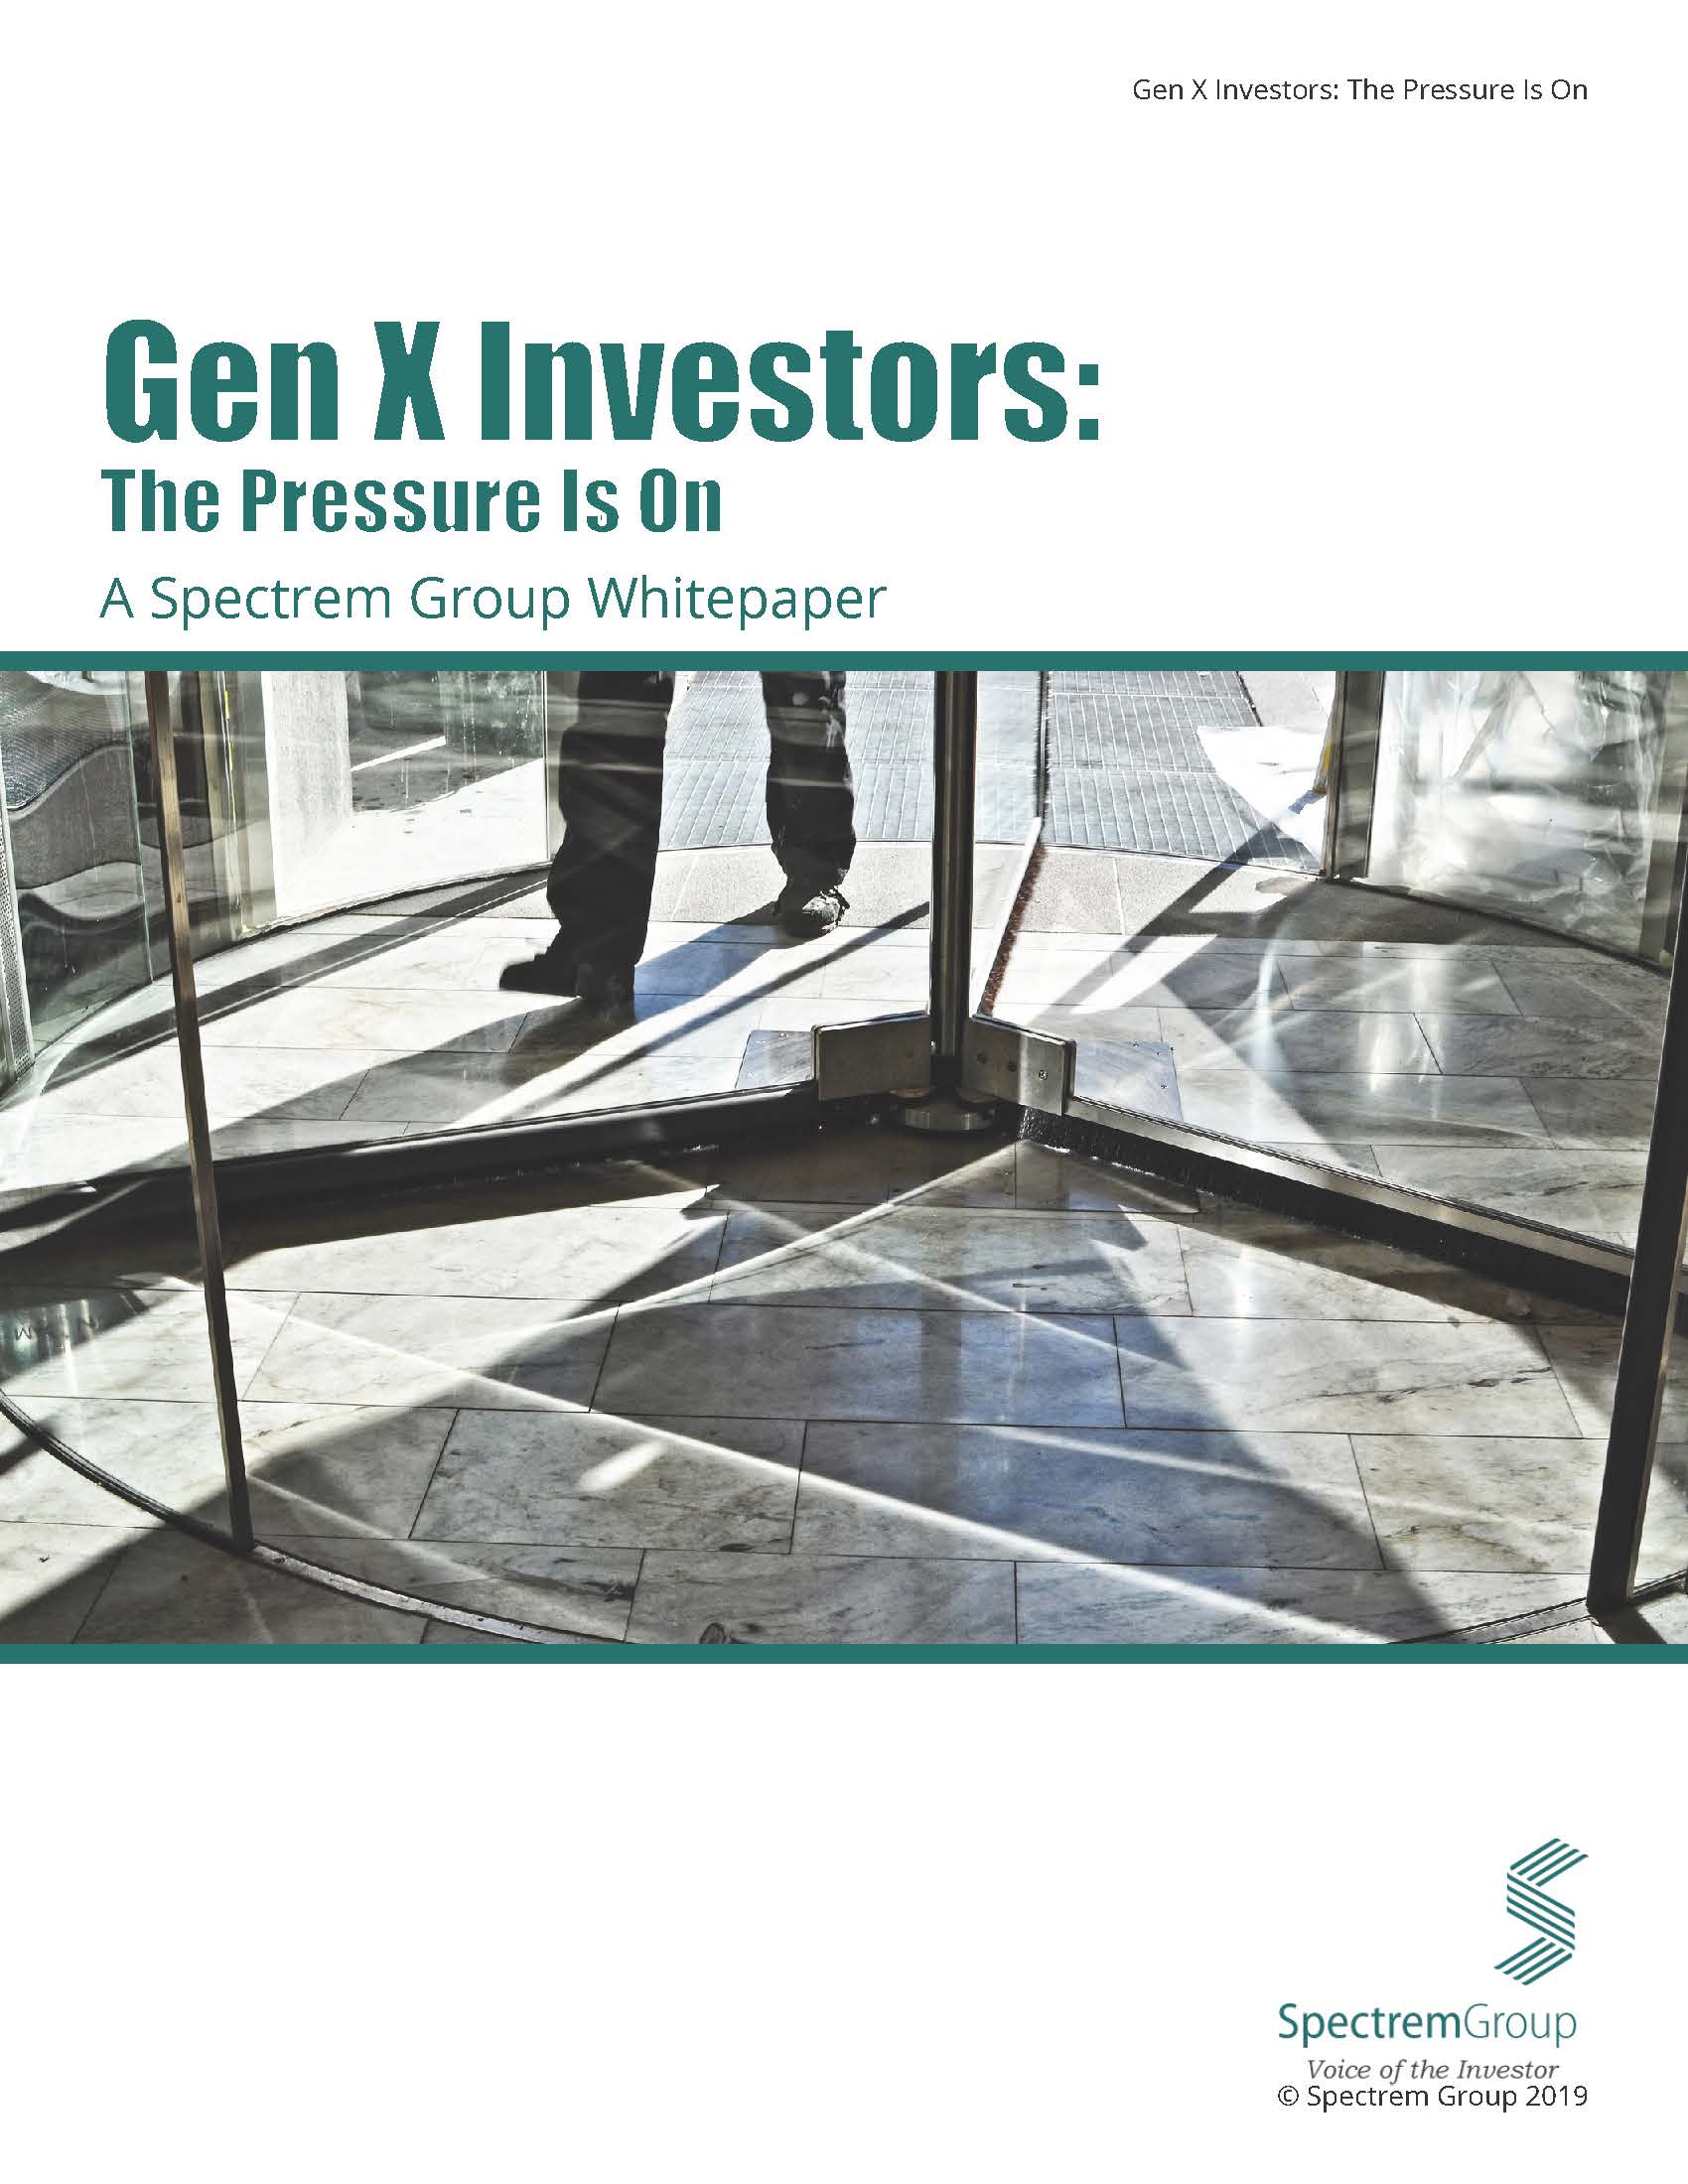 Gen X Investors: The Pressure is On